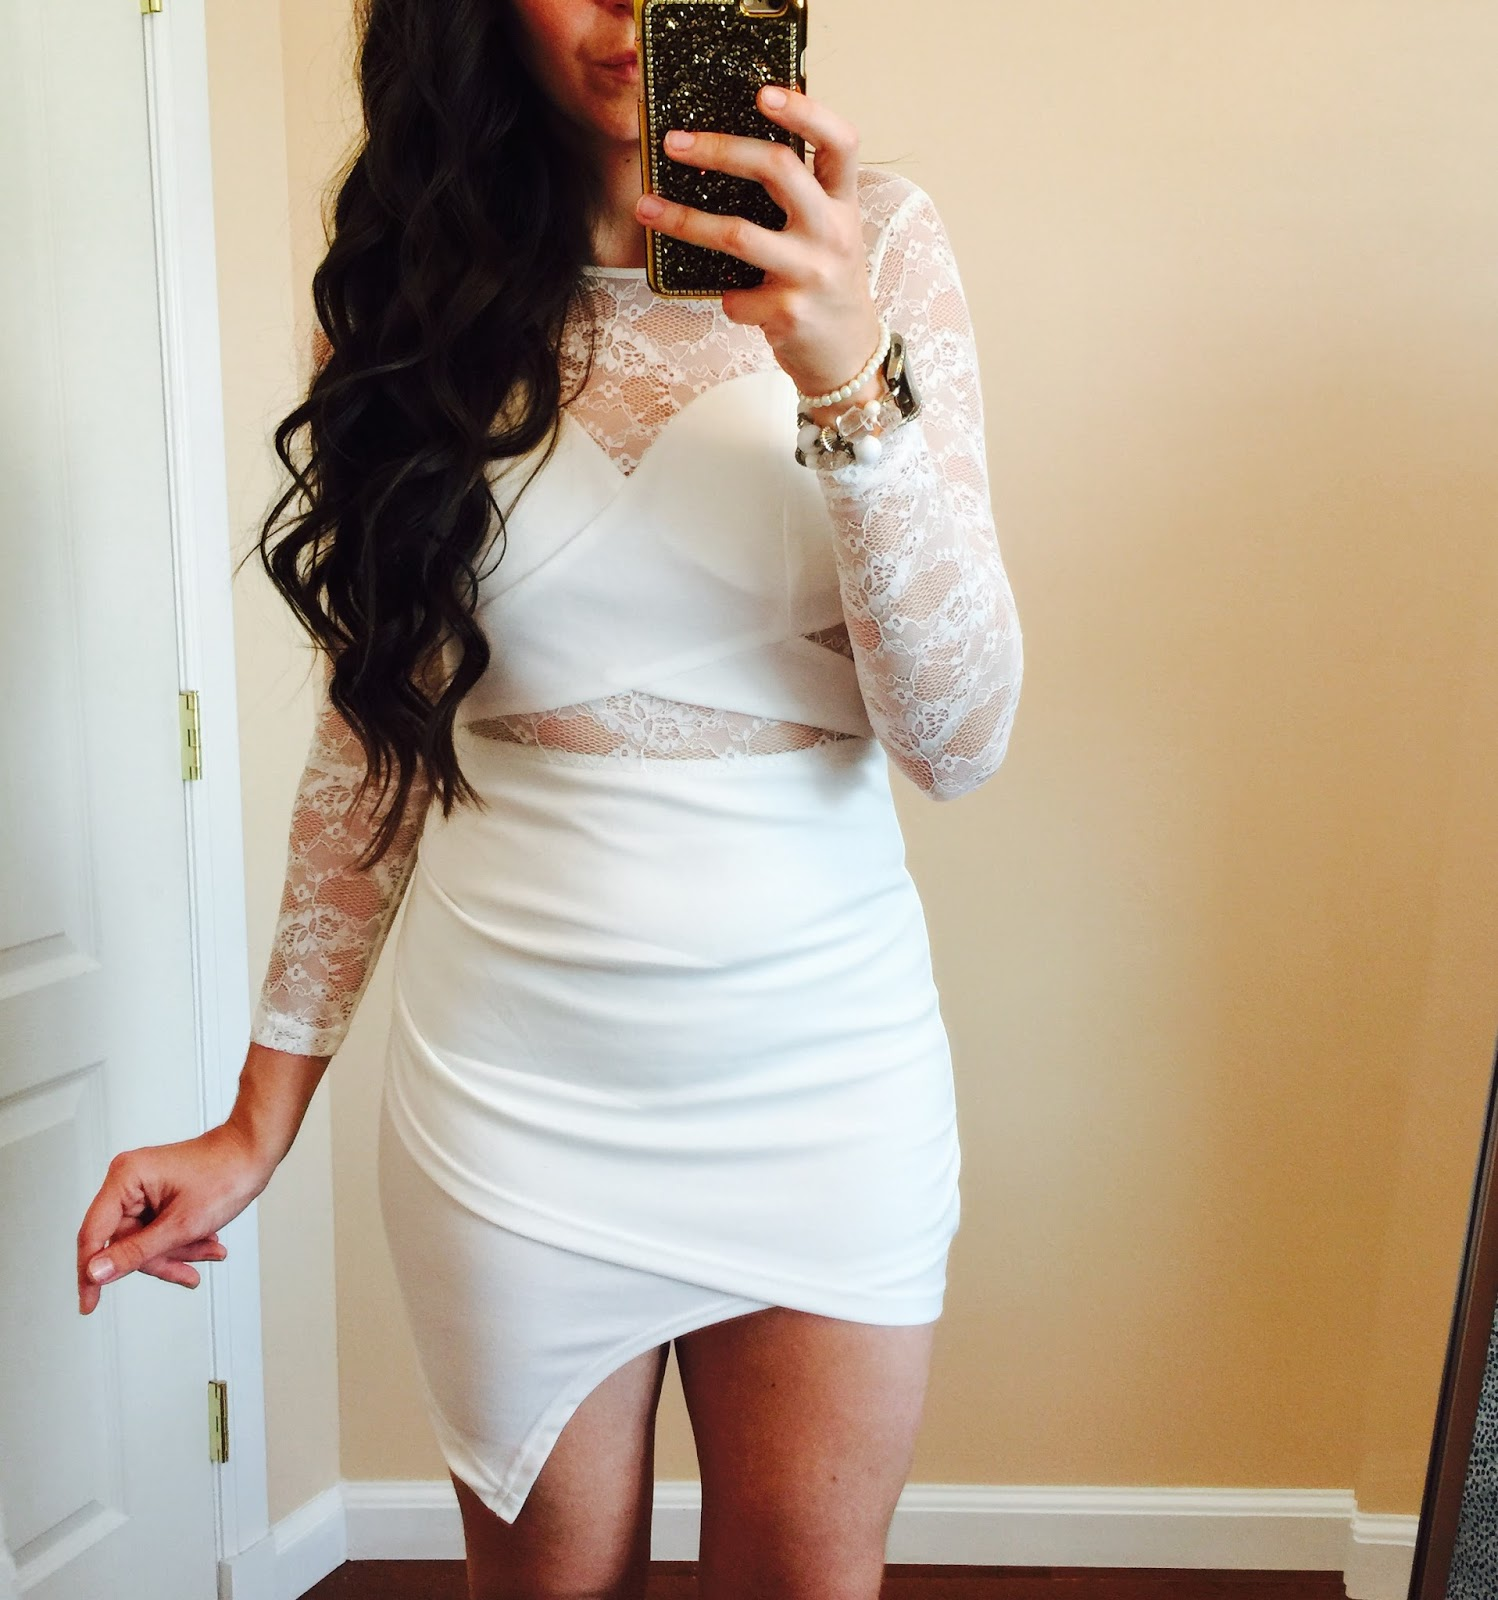 georgina dress, the prissy shop georgina dress, the prissy shop, lace dress, white lace dress, cute,